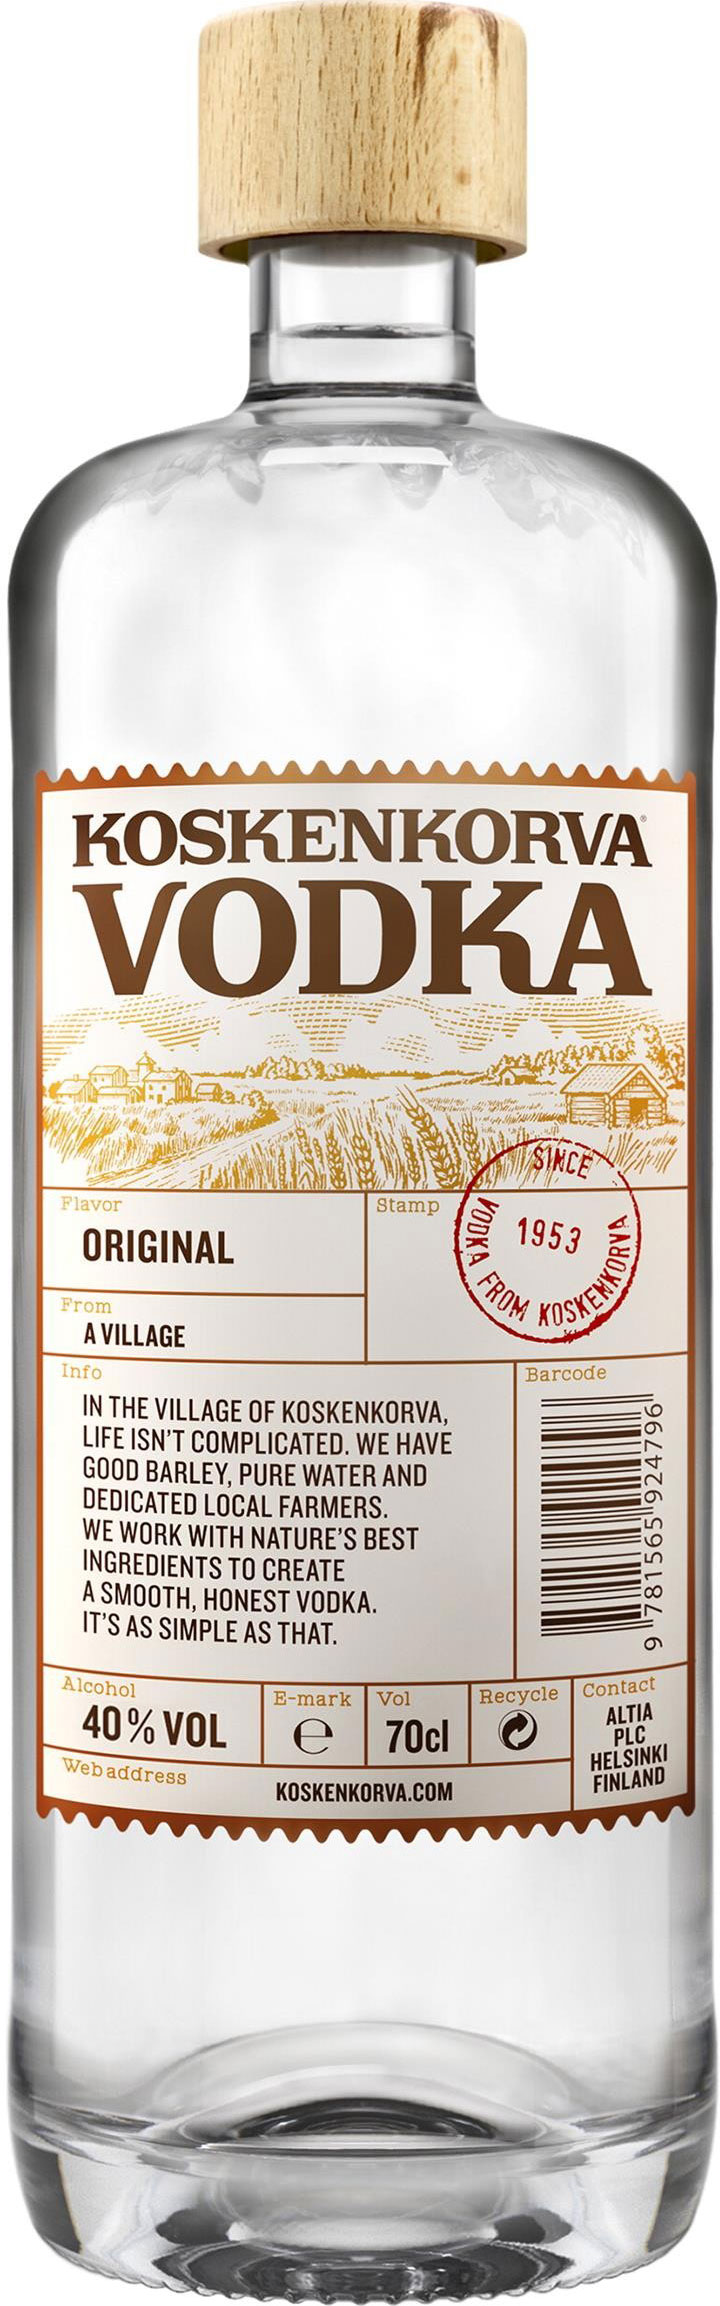 Koskenkorva - Vodka 70cl Bottle